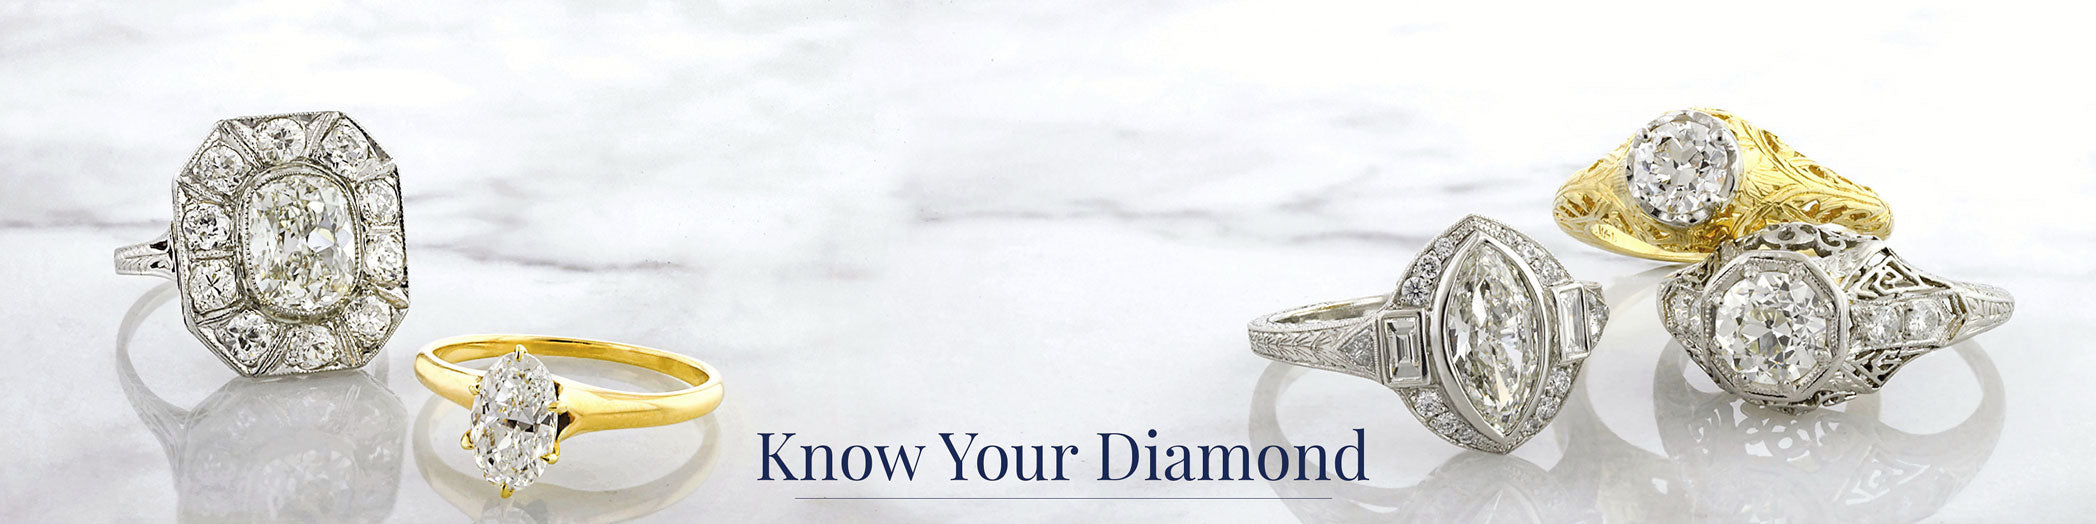 Know Your Diamond